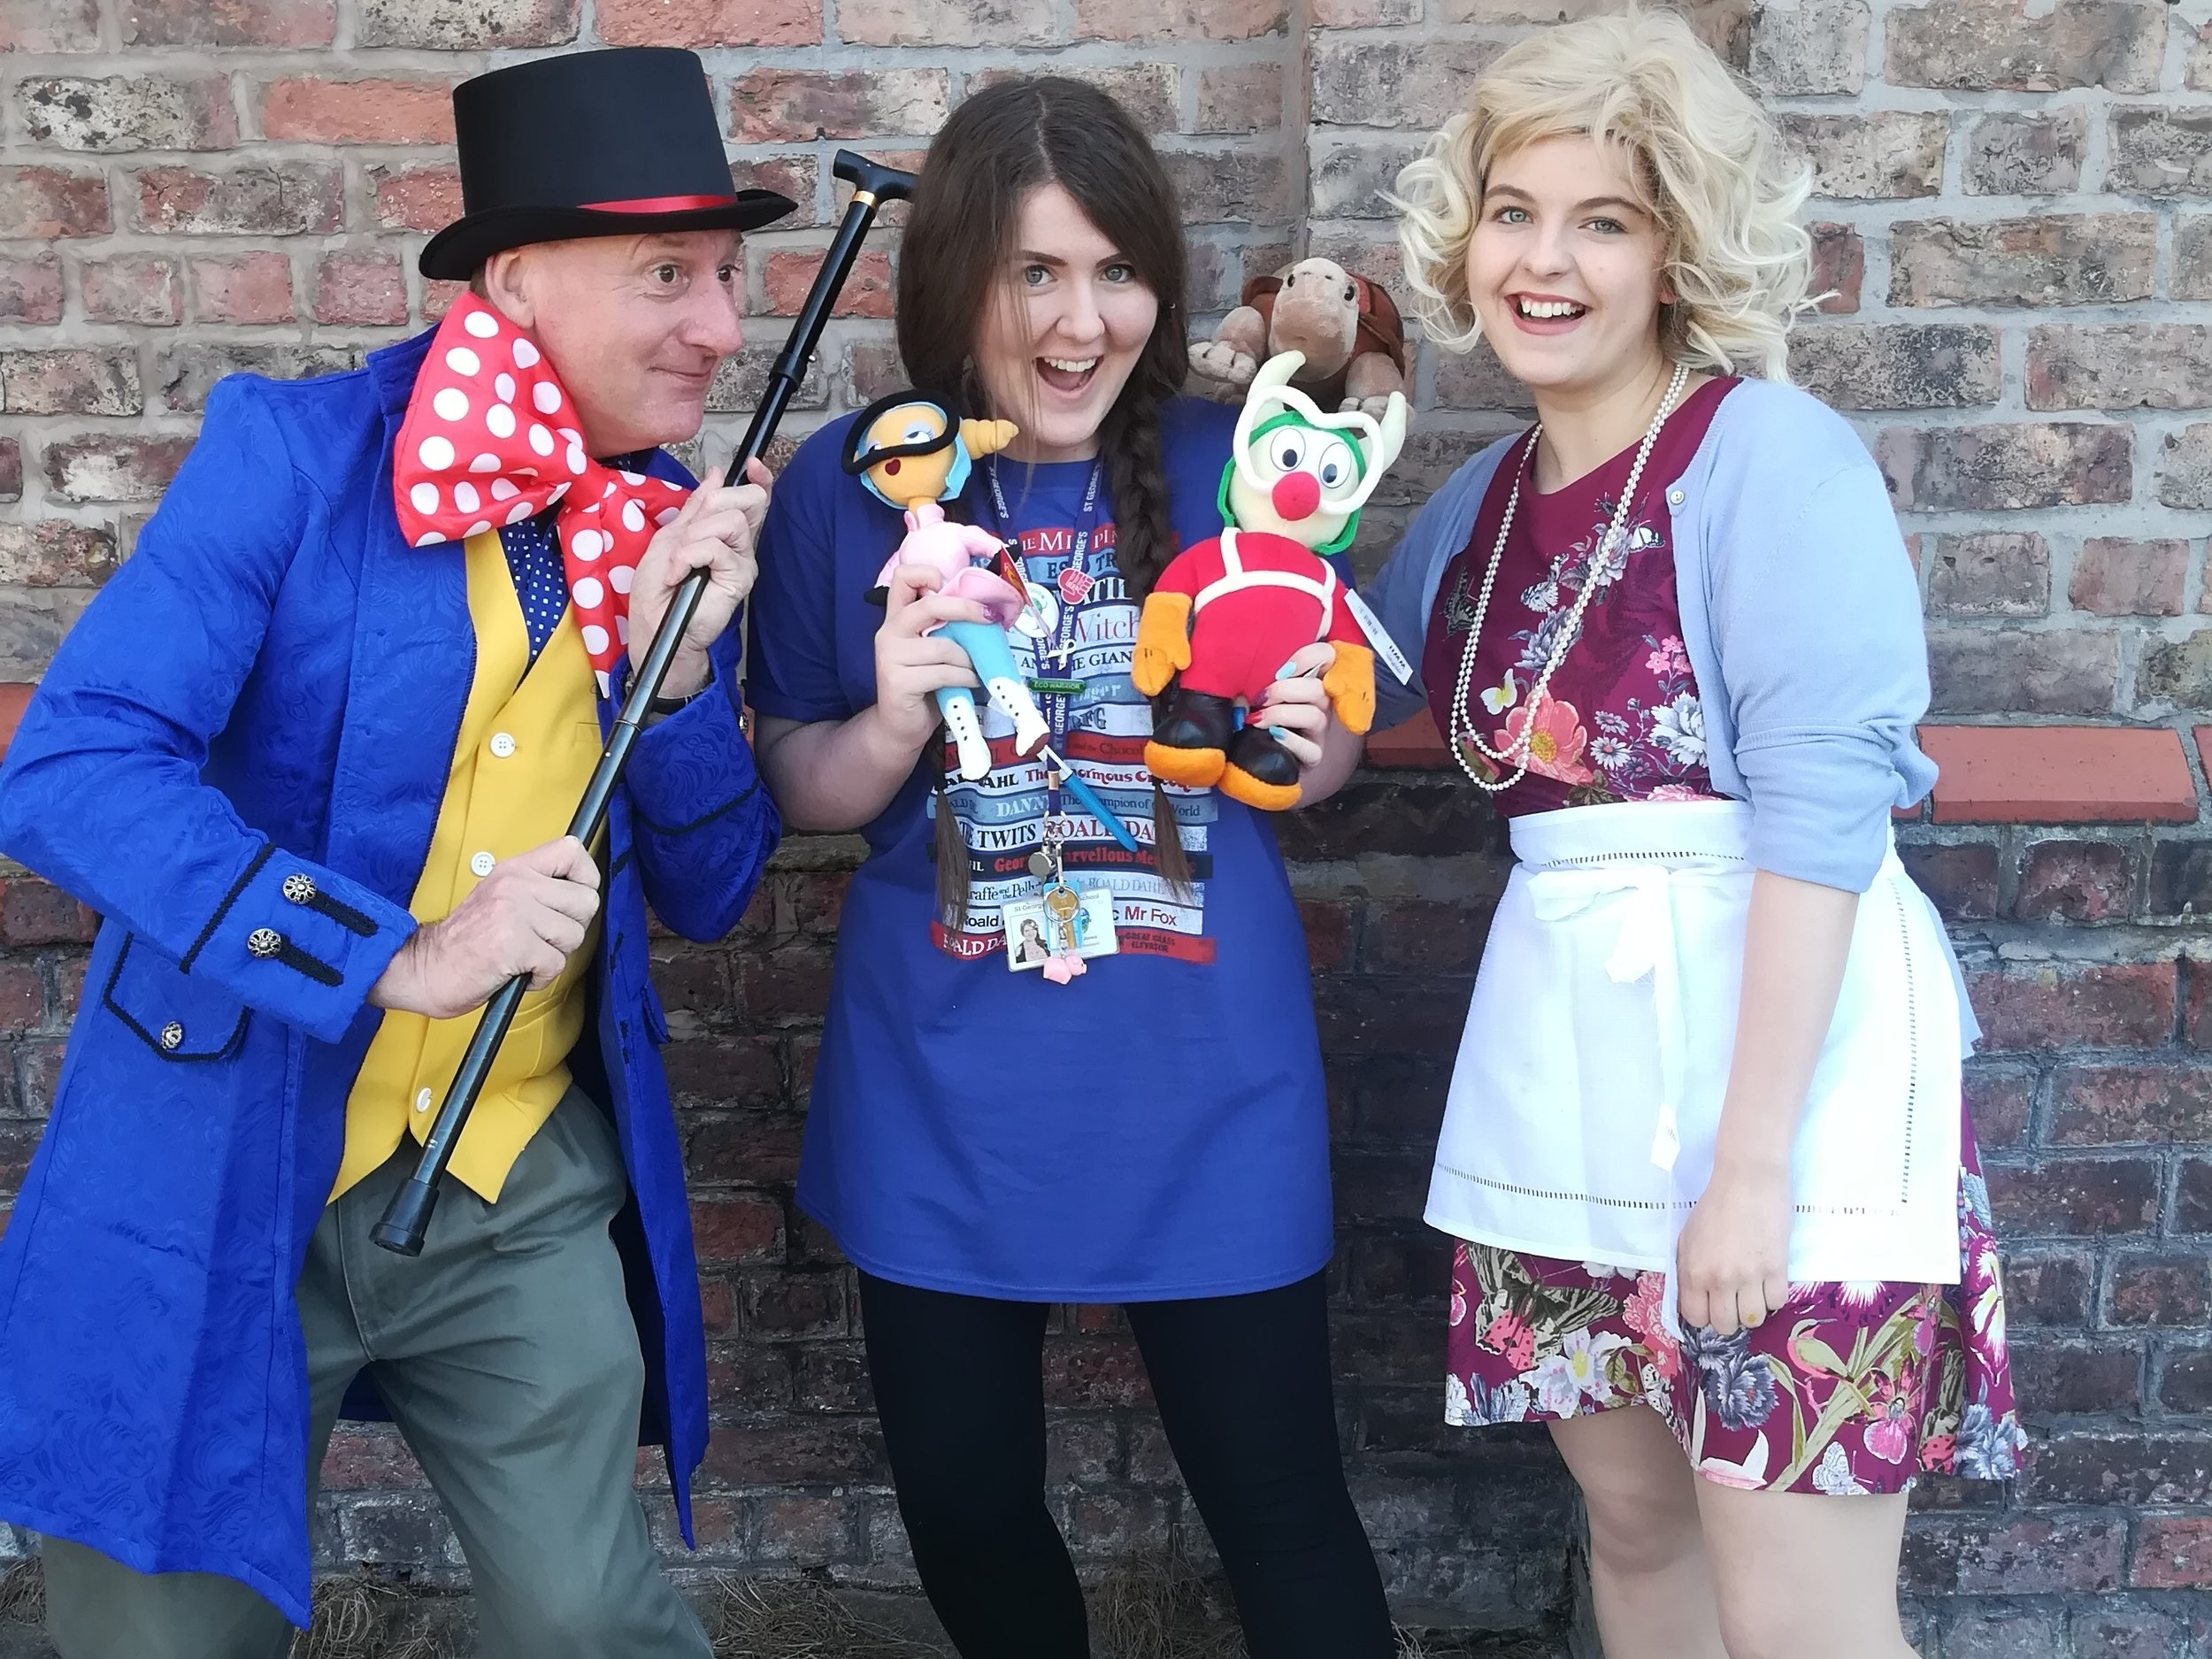 Photo of Holly (far right) and Tony Higginson from Beyond Books Media, dressed as Willy Wonka and Mrs Silver from Esio Trot.